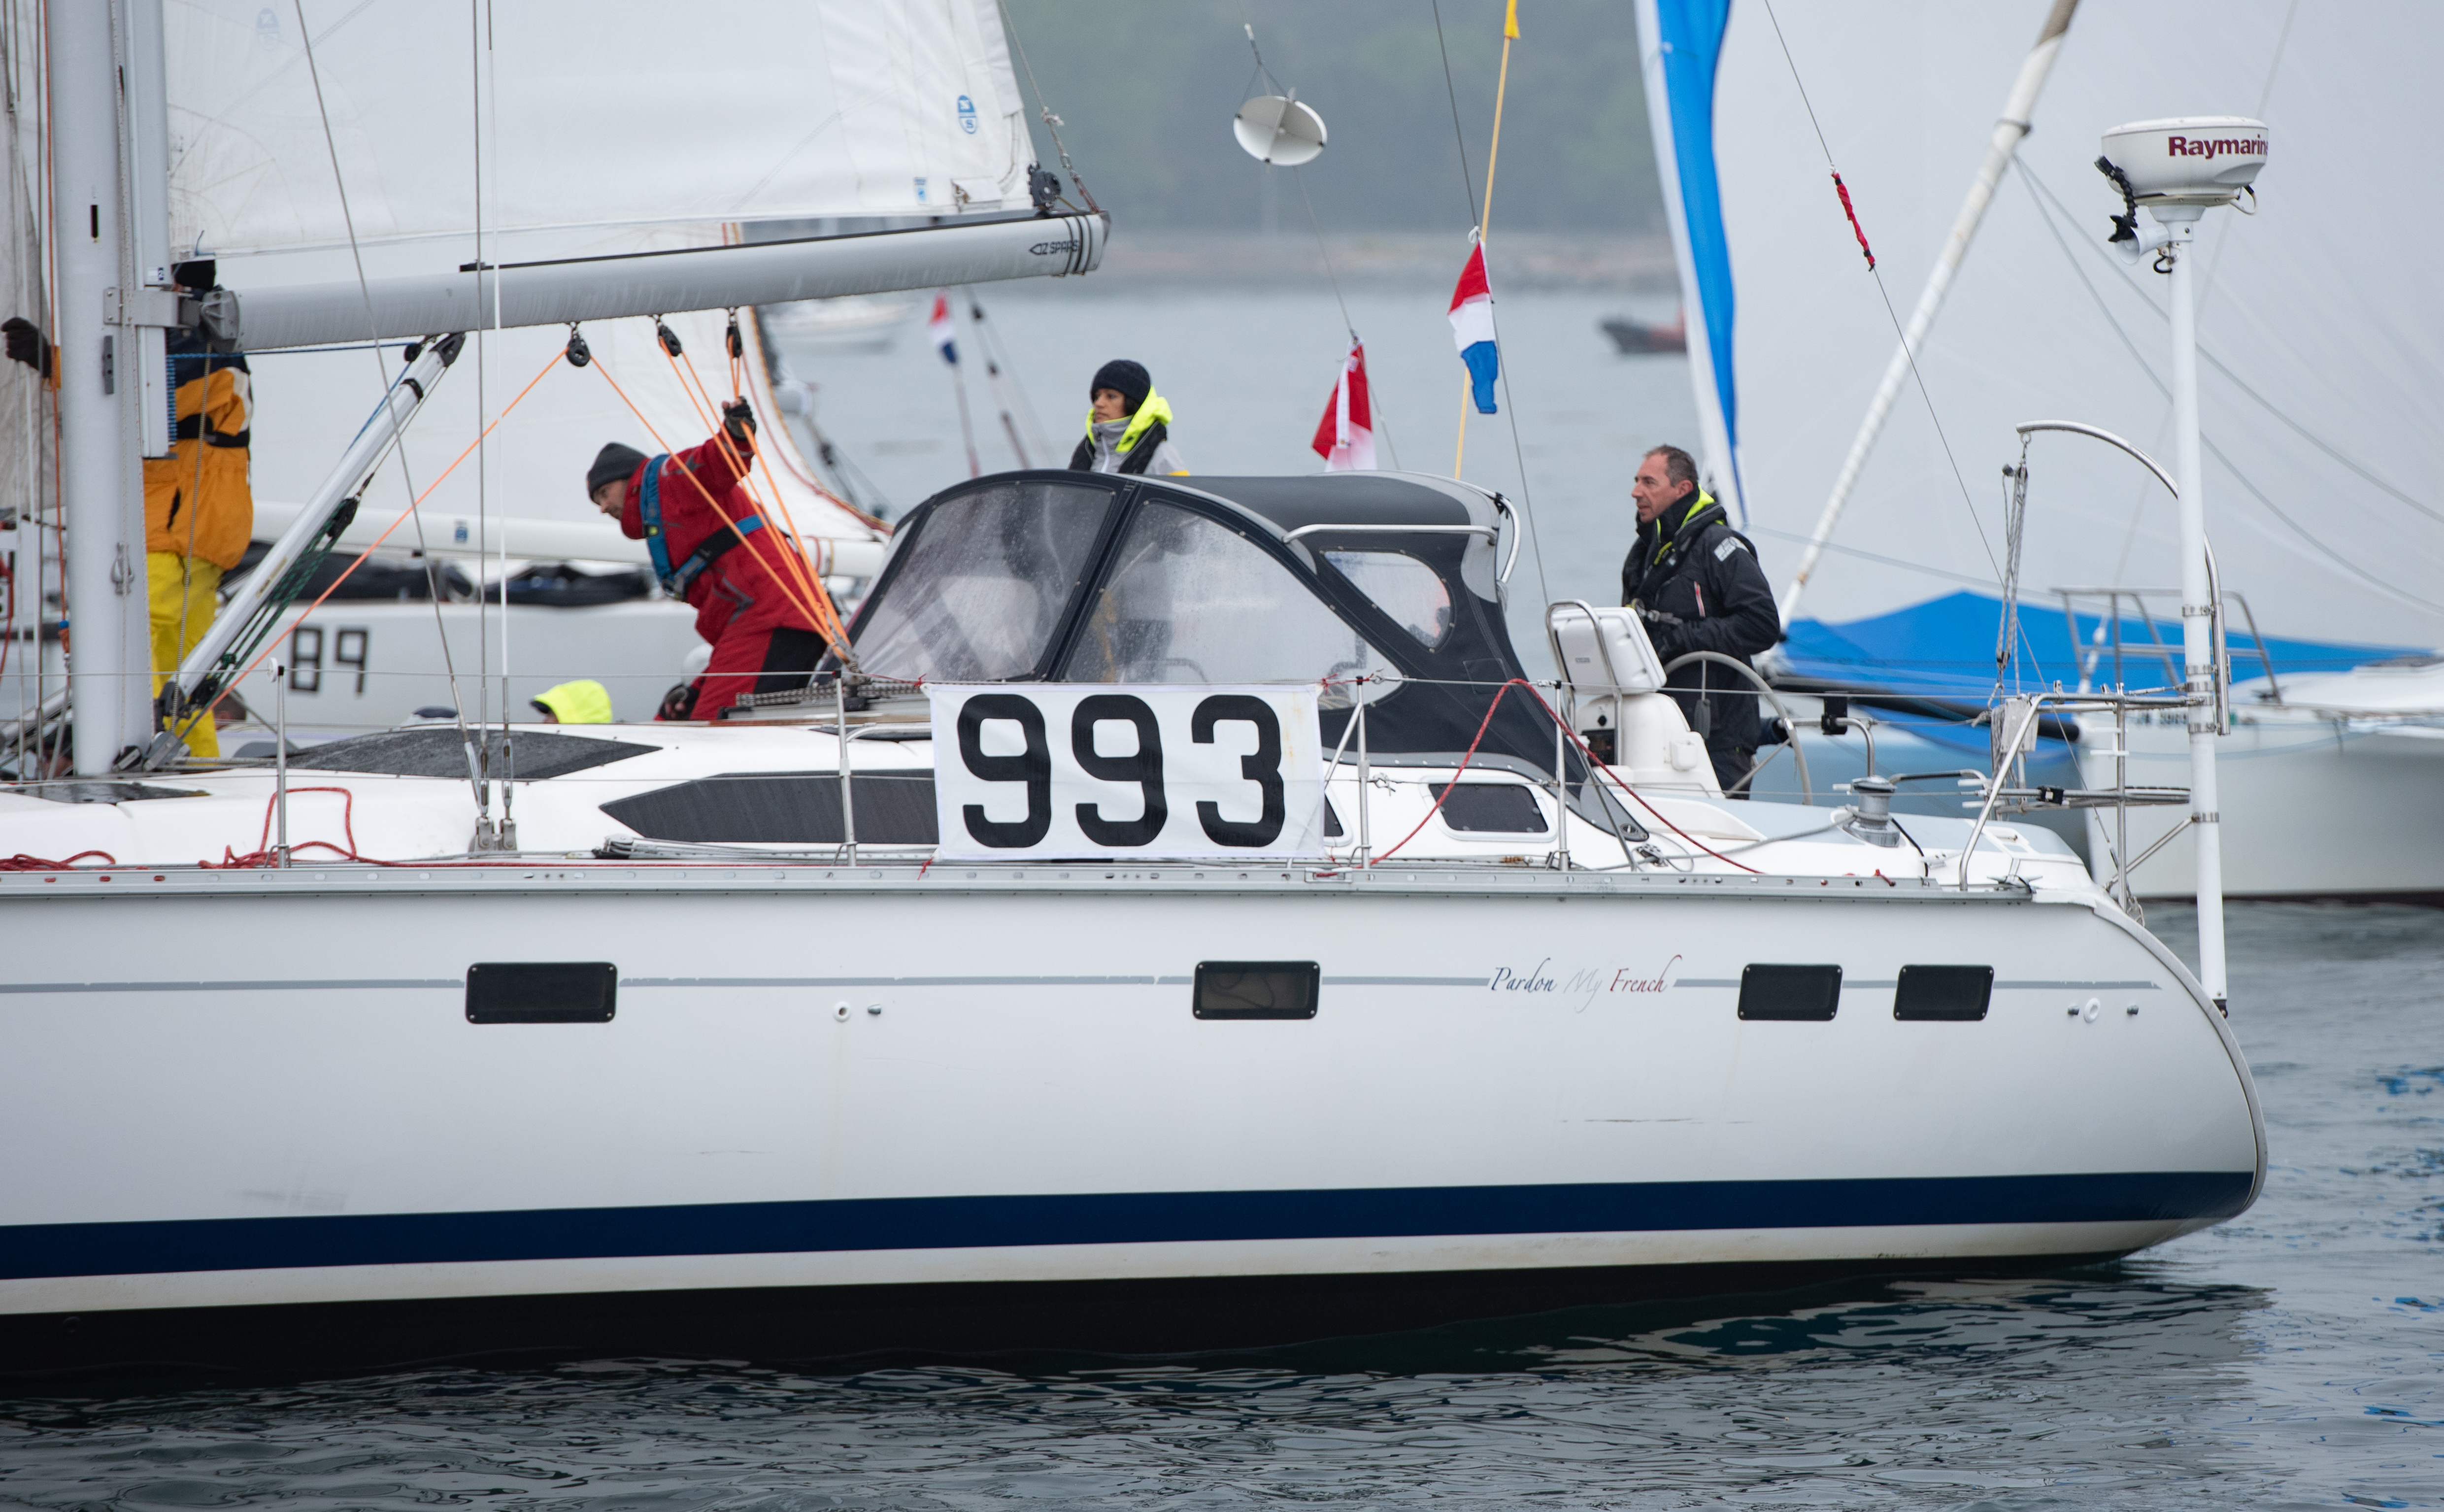 Swiftsure-25-May-2019-RMS-Media-by-Rob-Porter-65